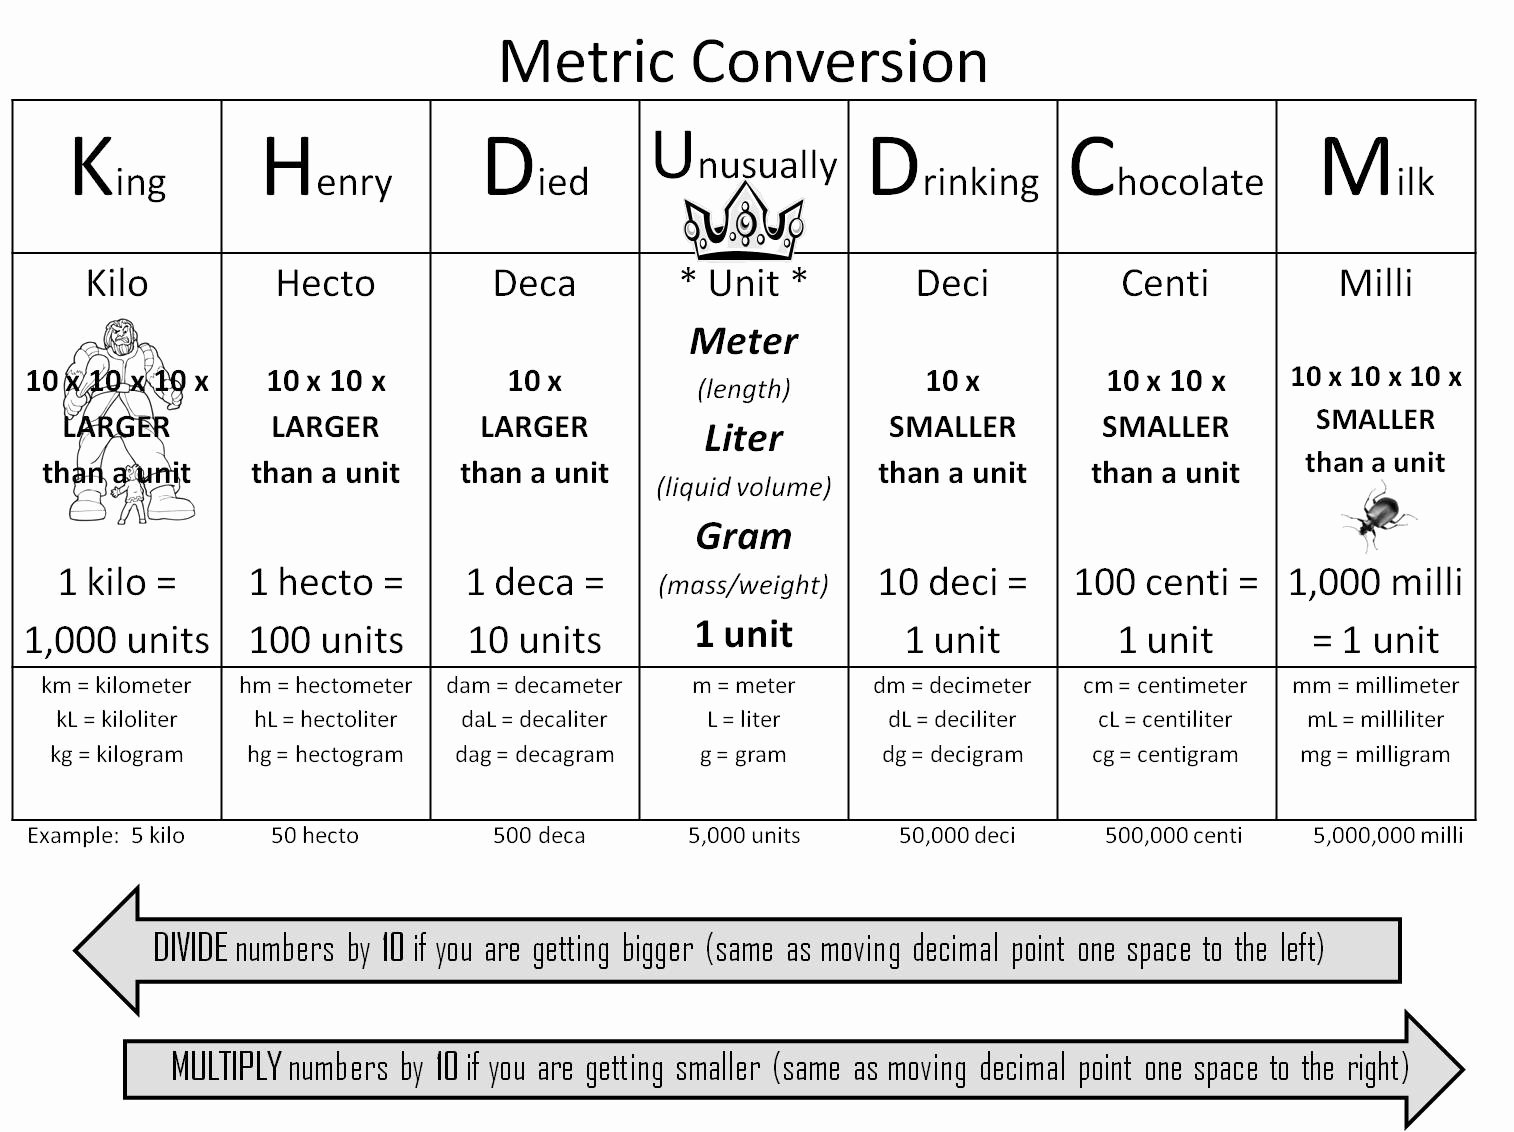 Chemistry Conversion Factors Worksheet Best Of Strong Armor Math Metric Conversion Trick